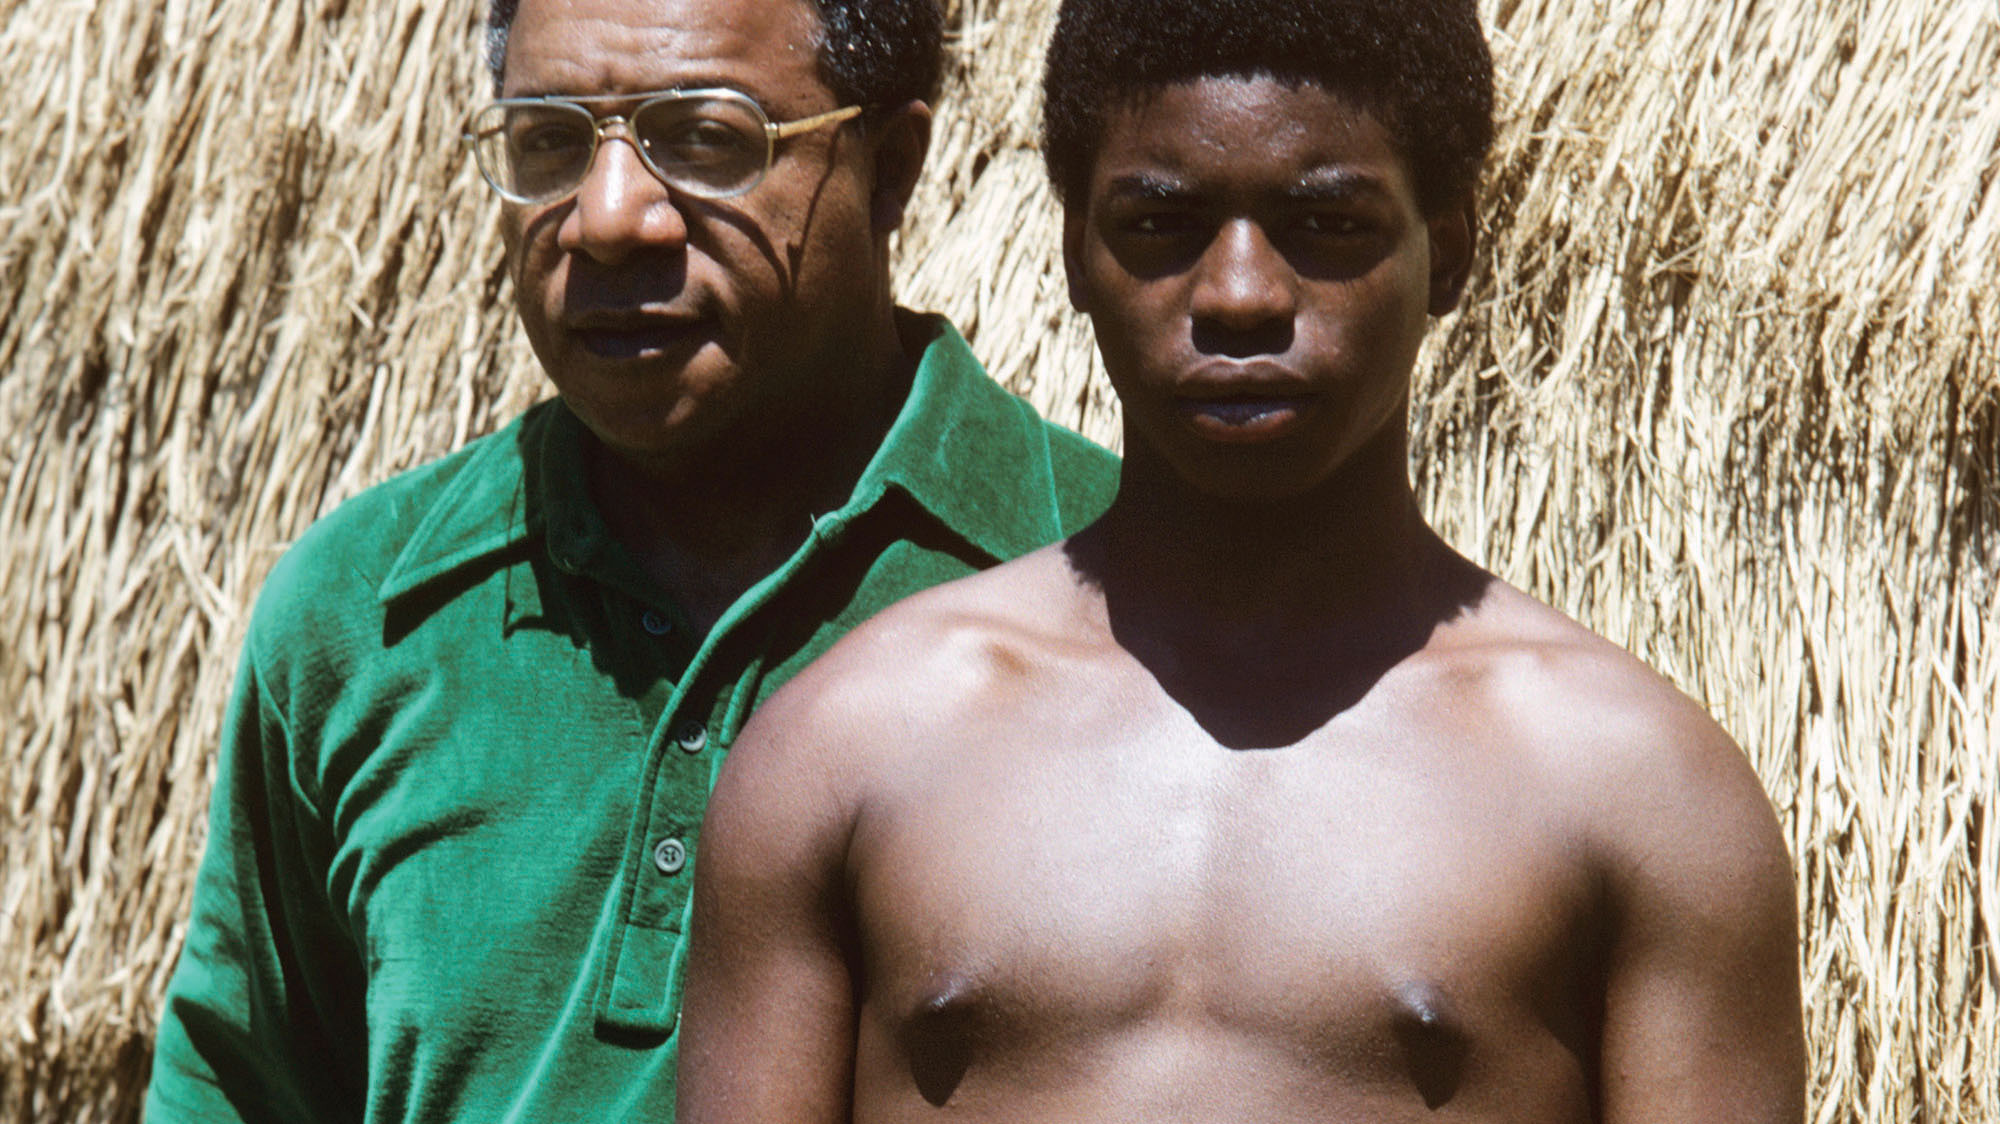 Alex Haley and LeVar Burton during the filming of Roots.